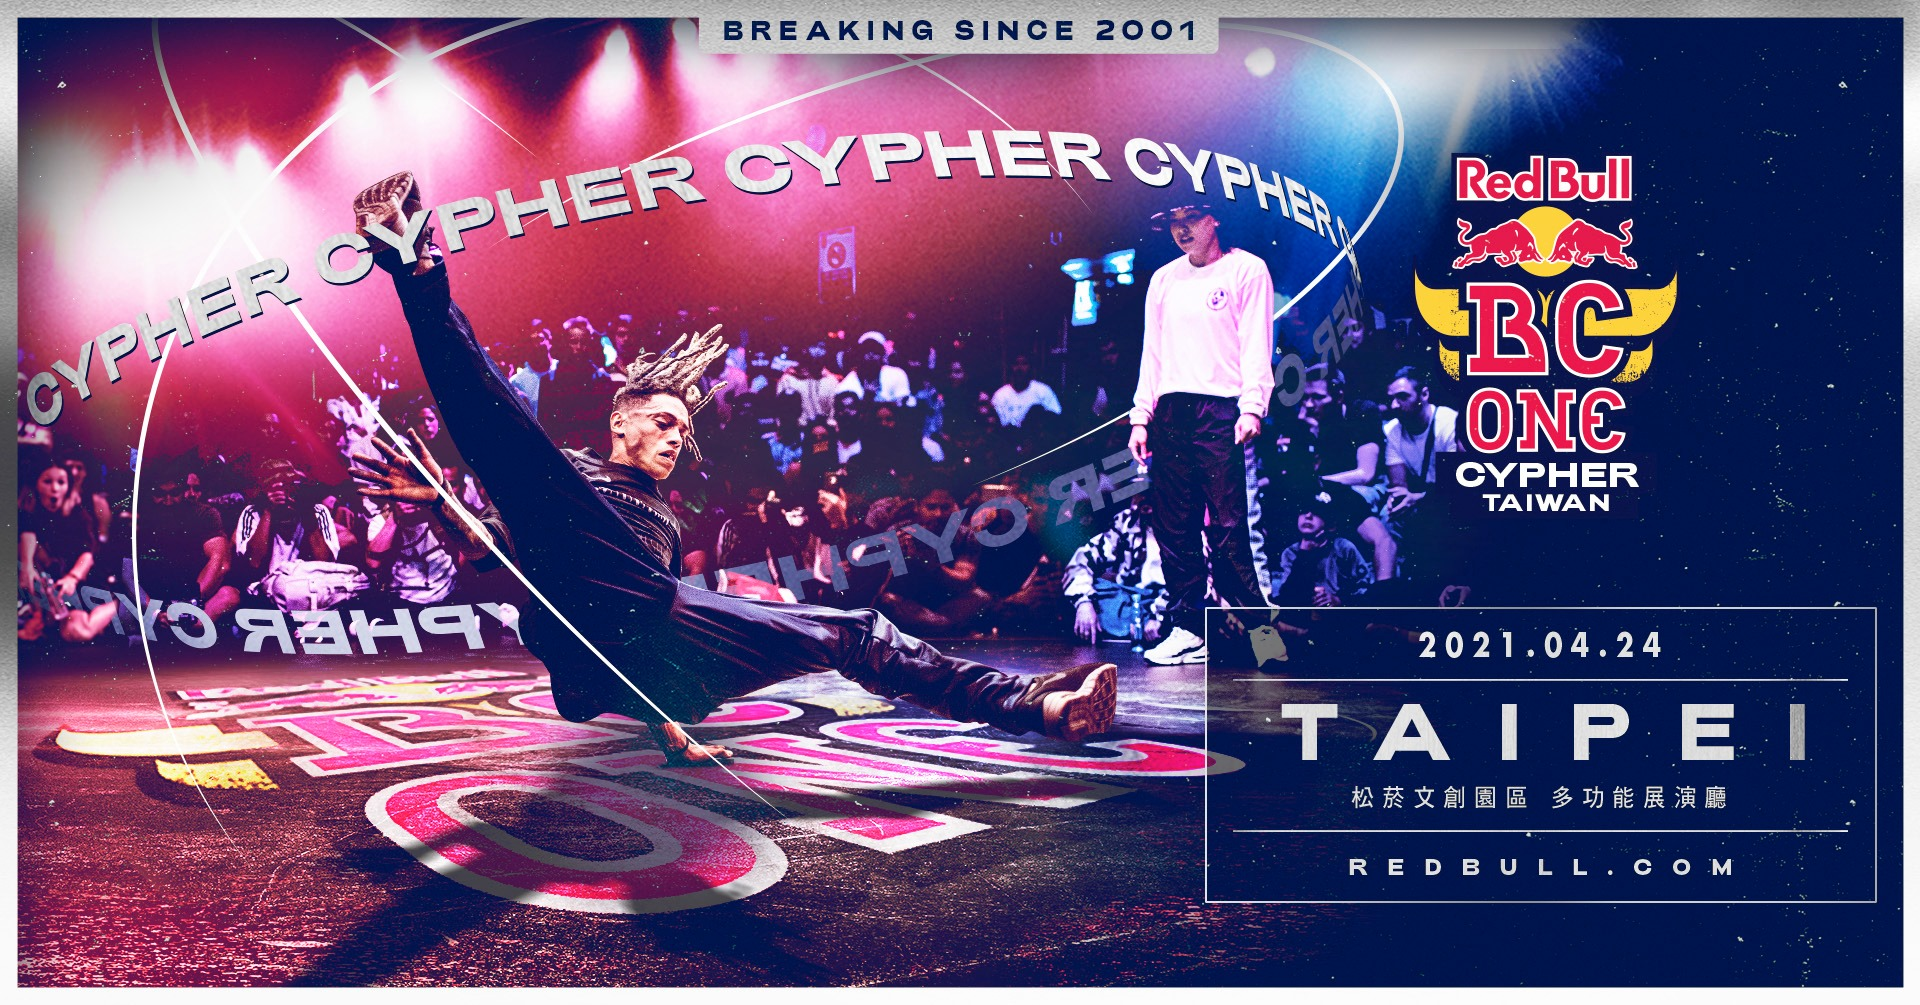 Red Bull BC One Cypher Taiwan 2021